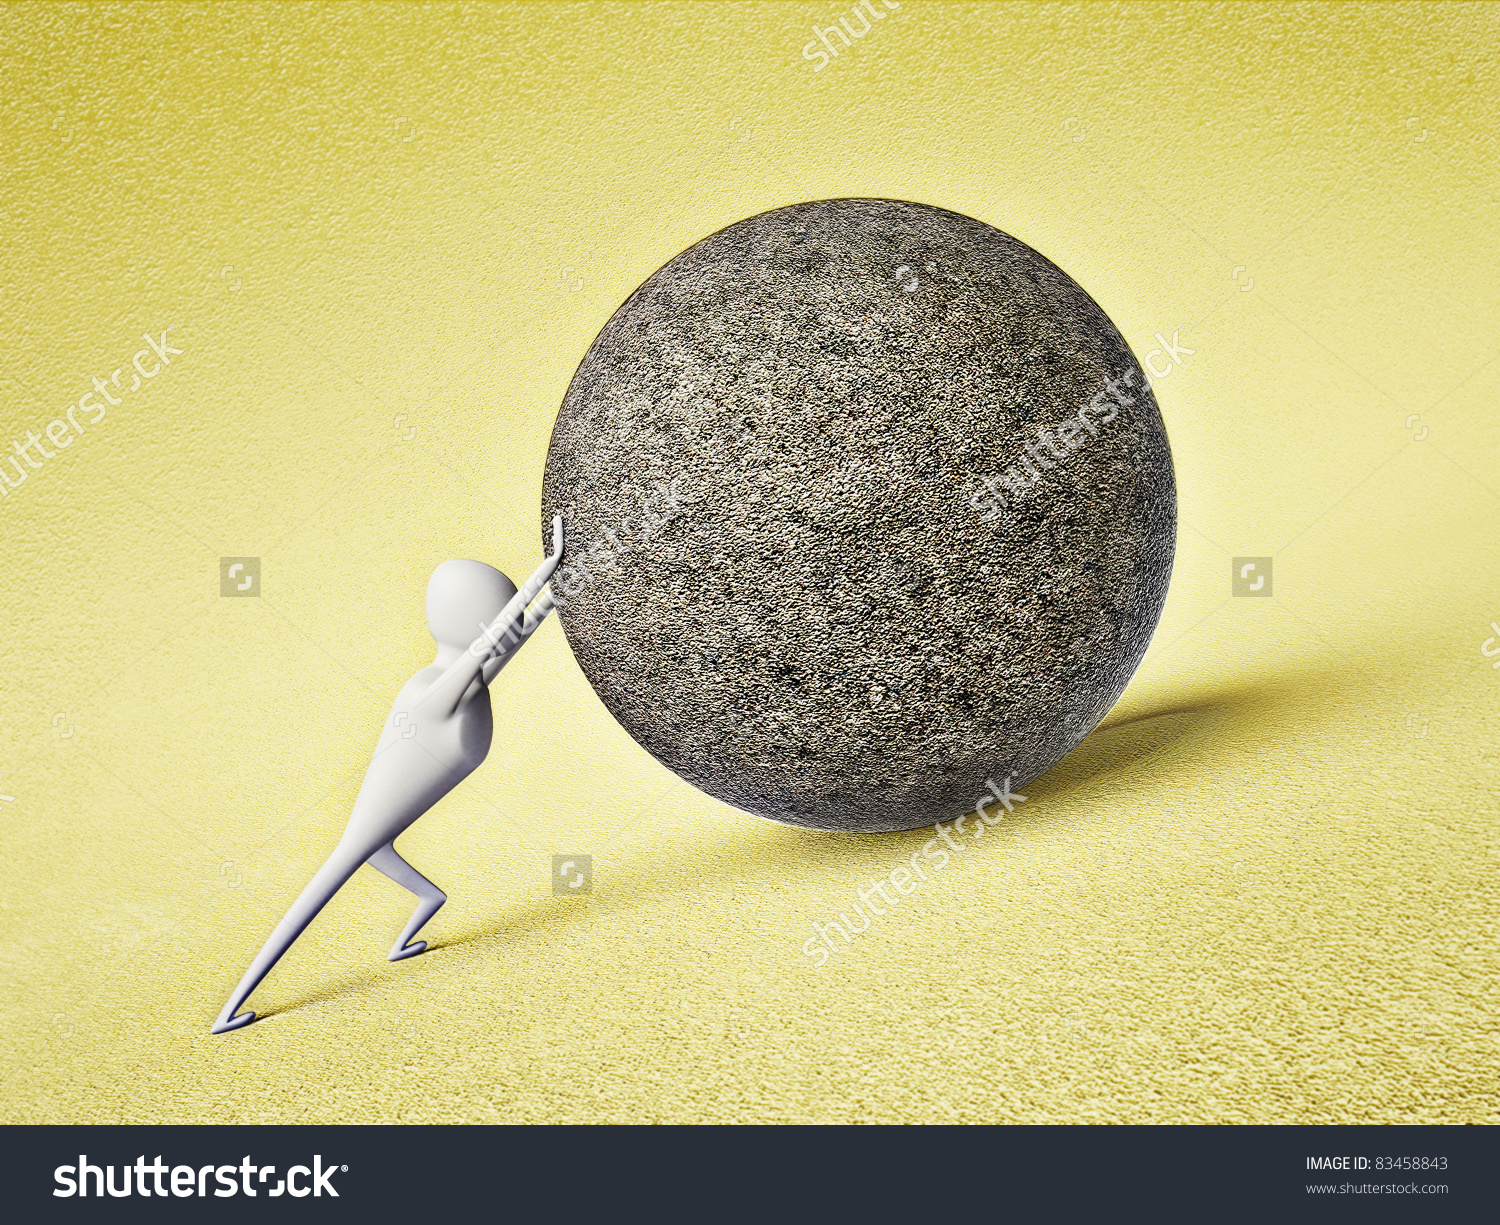 Strong Man Pushing A Large Stone Ball Stock Photo 83458843.